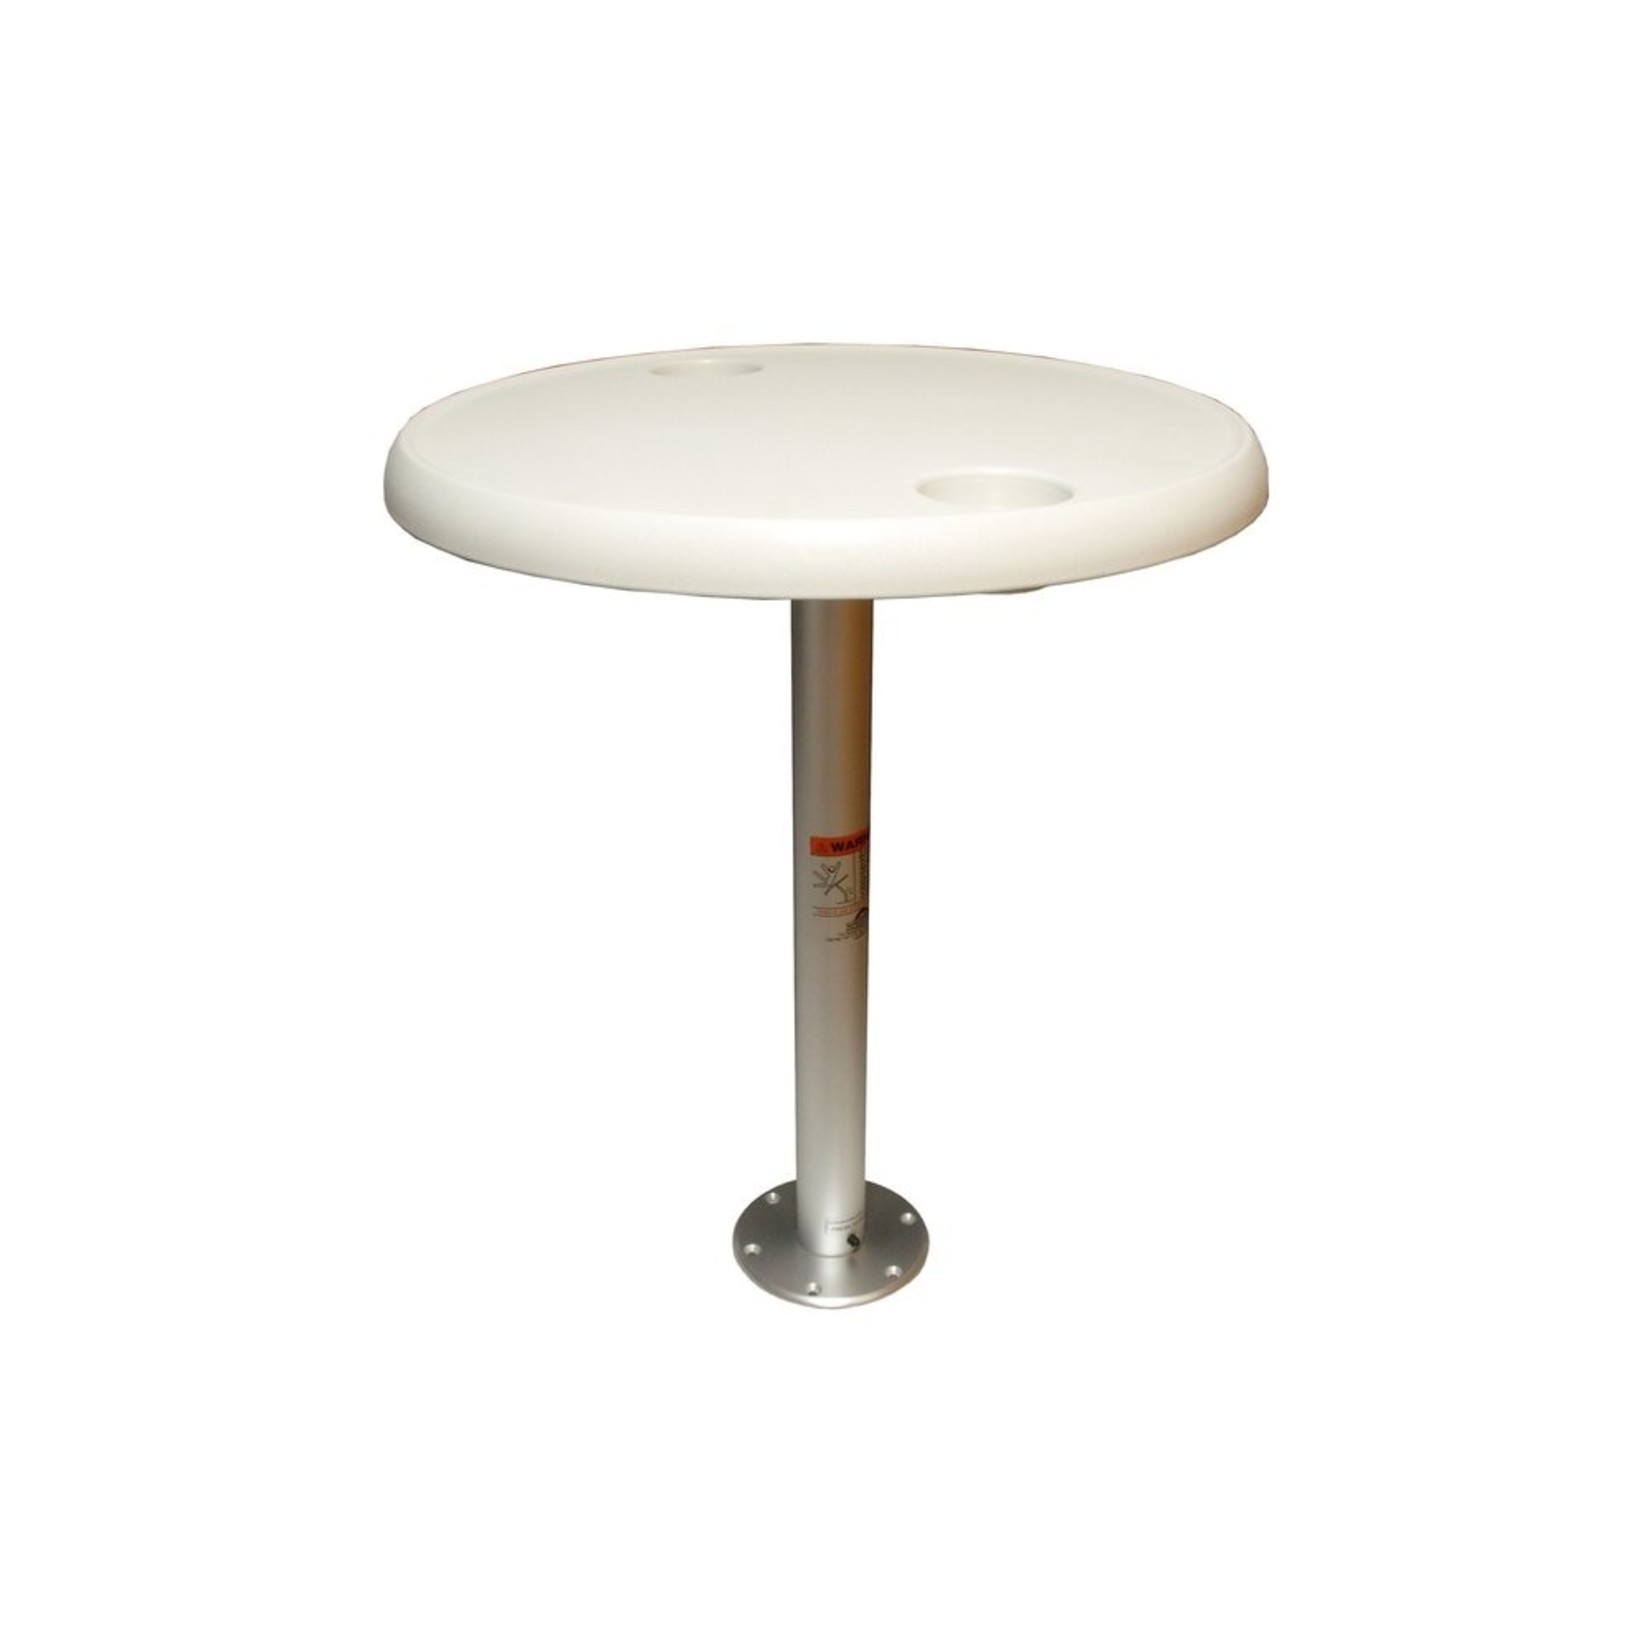 Allpa Table Complete | Table top with pedestal